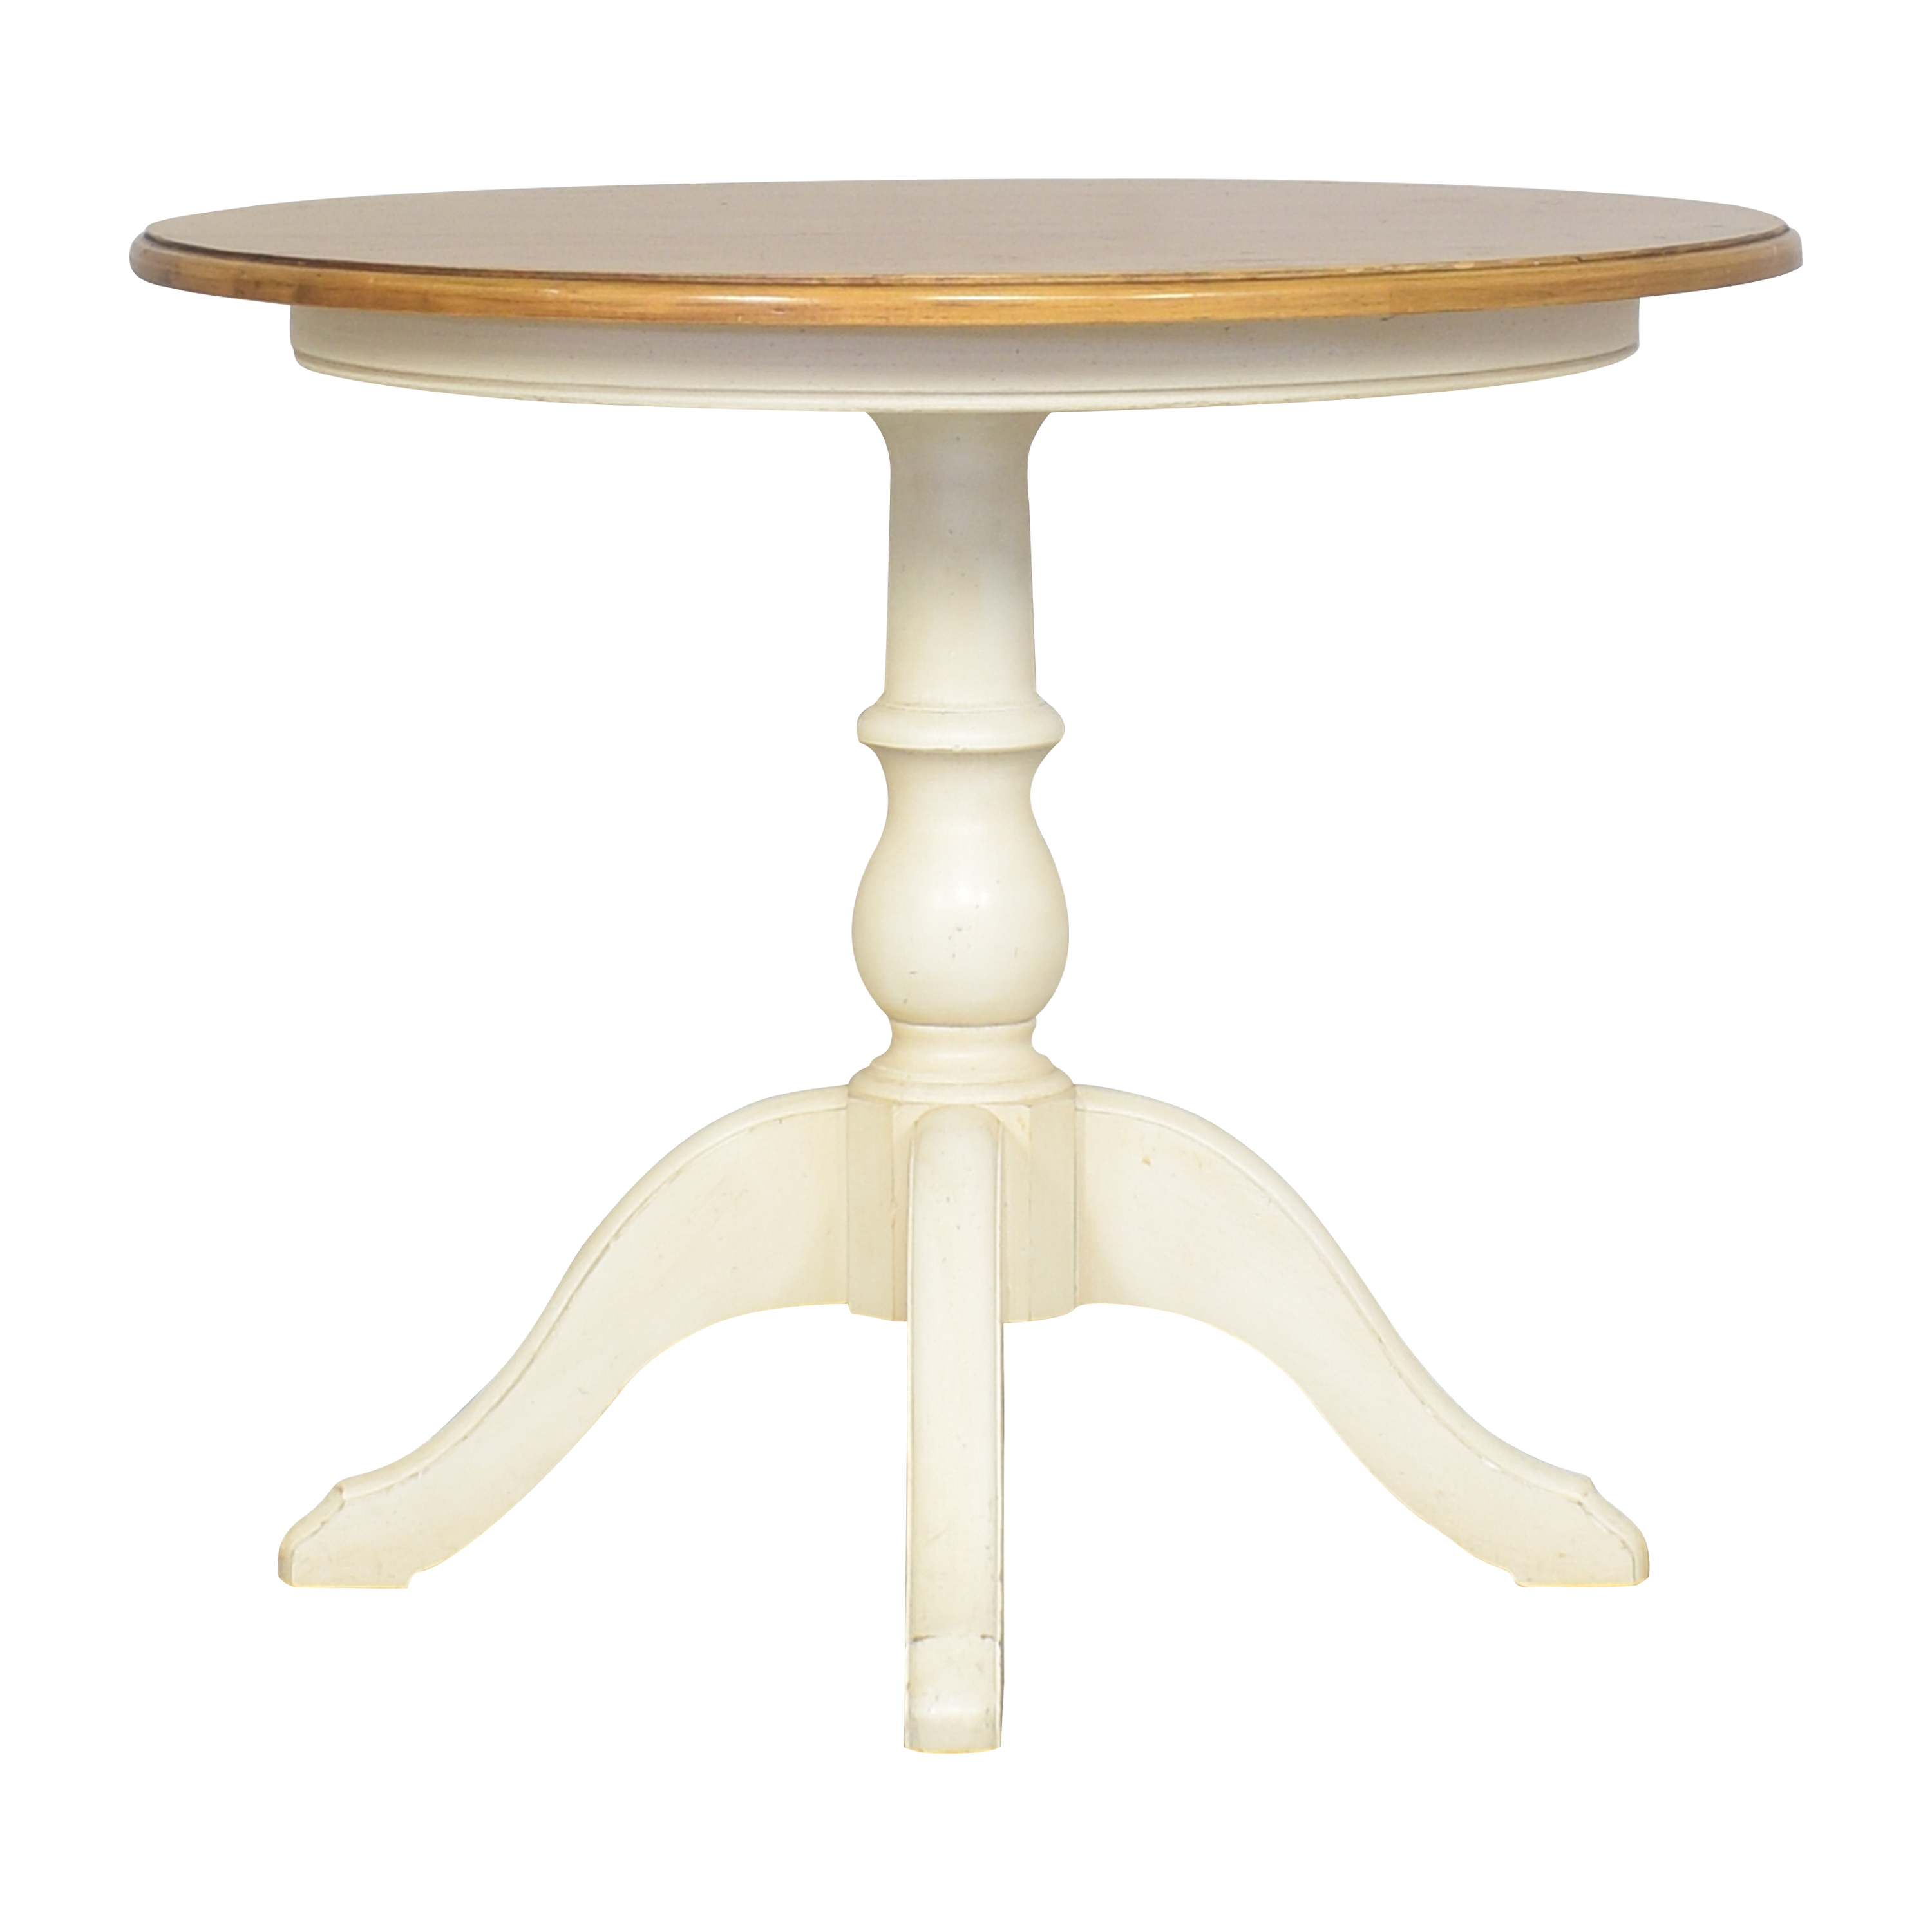 buy Ethan Allen New Country Round Dining Table Ethan Allen Dinner Tables